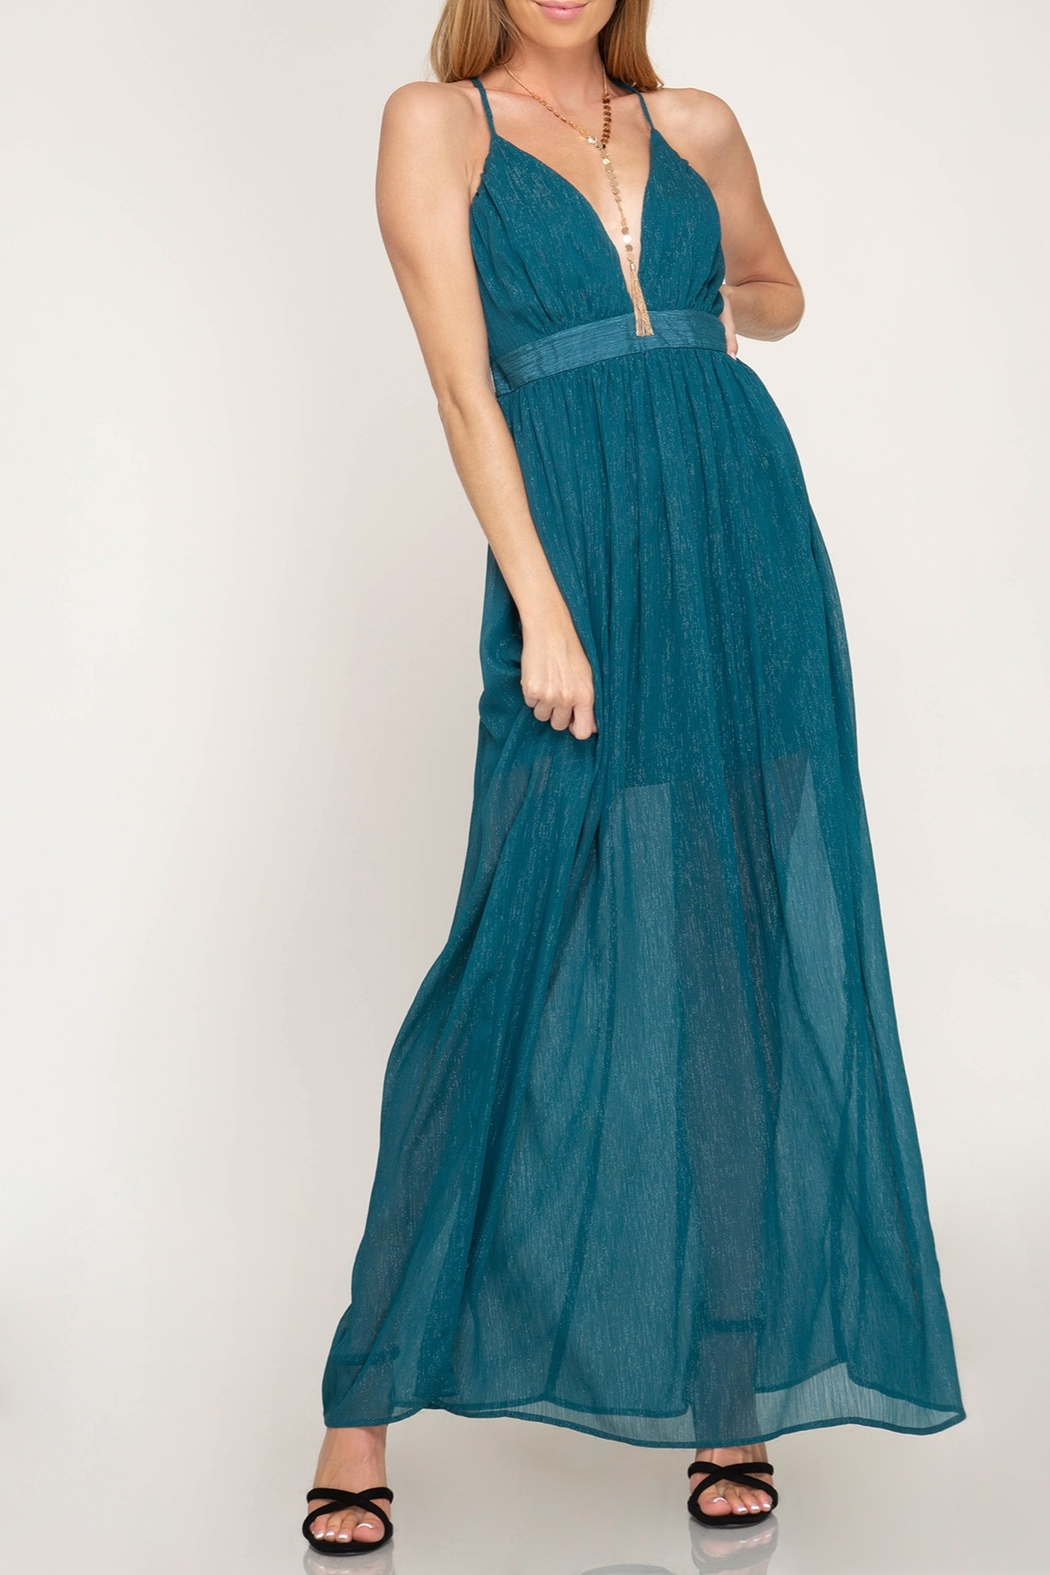 She + Sky Life Of The Party Maxi Dress - Main Image